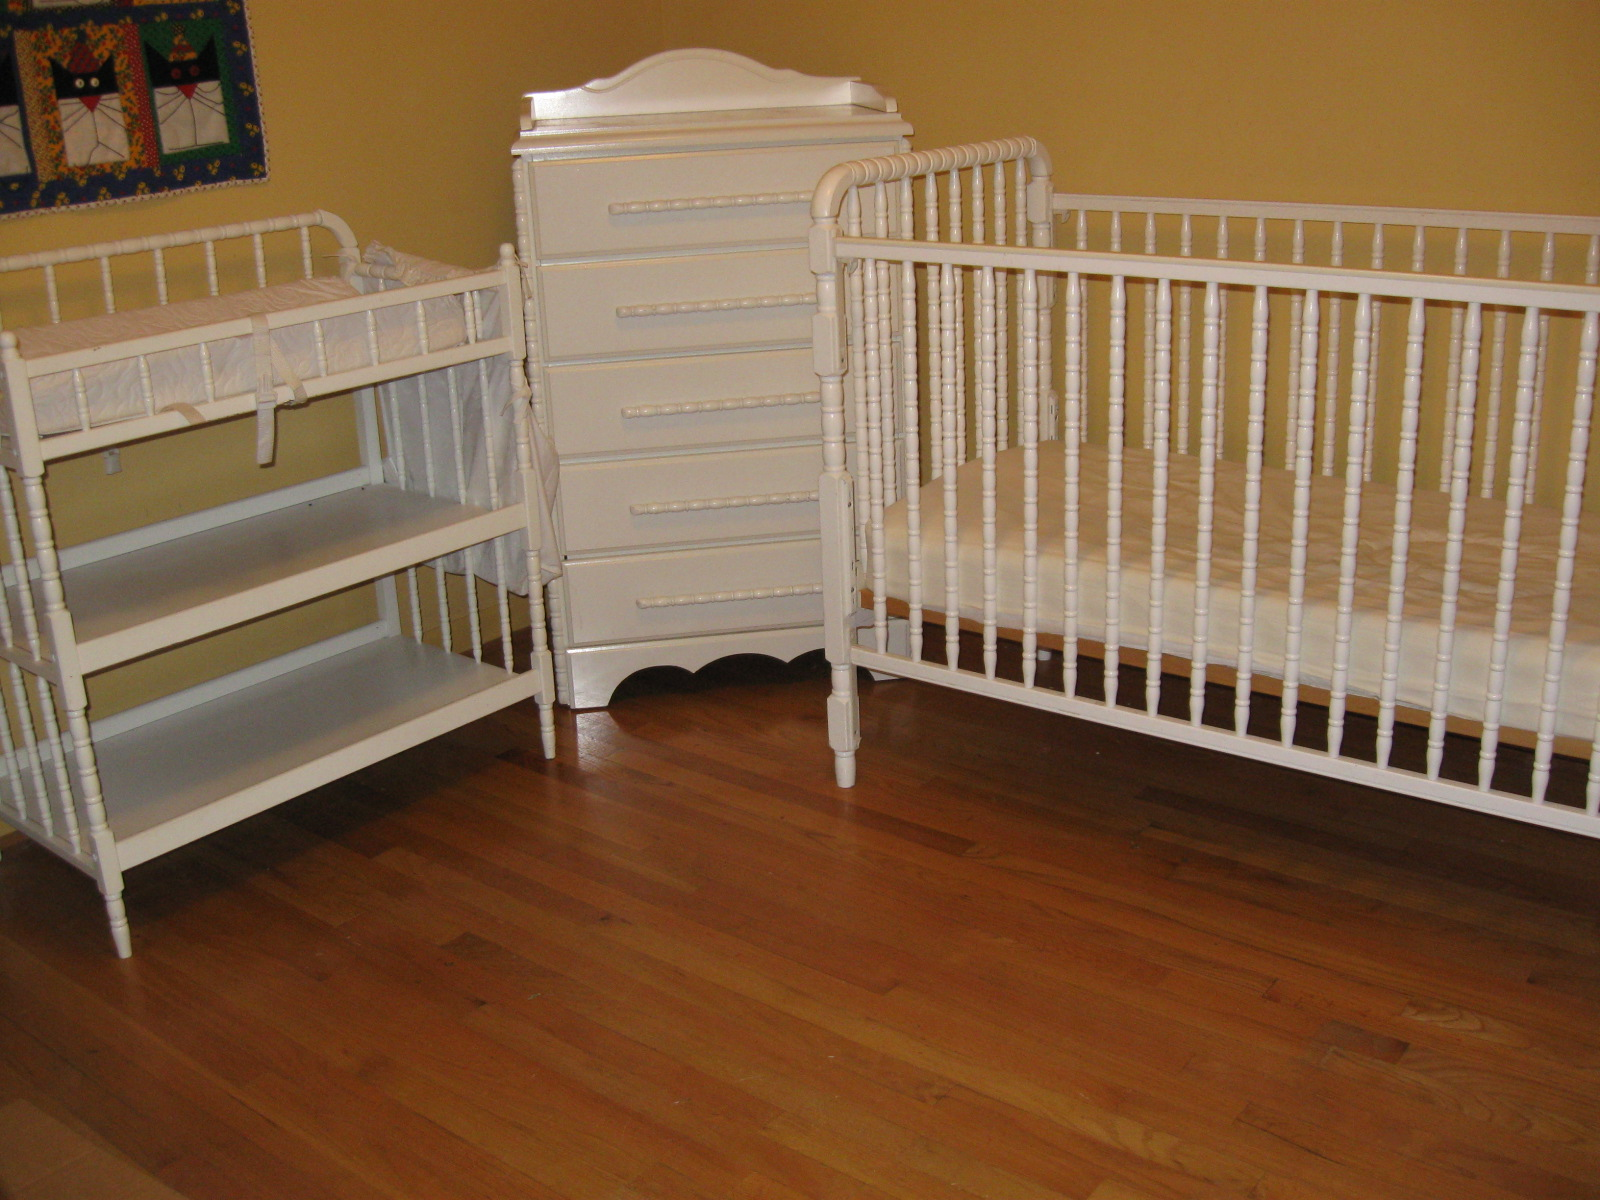 Amazing Three Piece Jenny Lind Baby Bed (including Mattress), Changing Table  (including Contoured Changing Pad), U0026 Chest   Good Condition (the Chestu0027s  Drawers Are ...